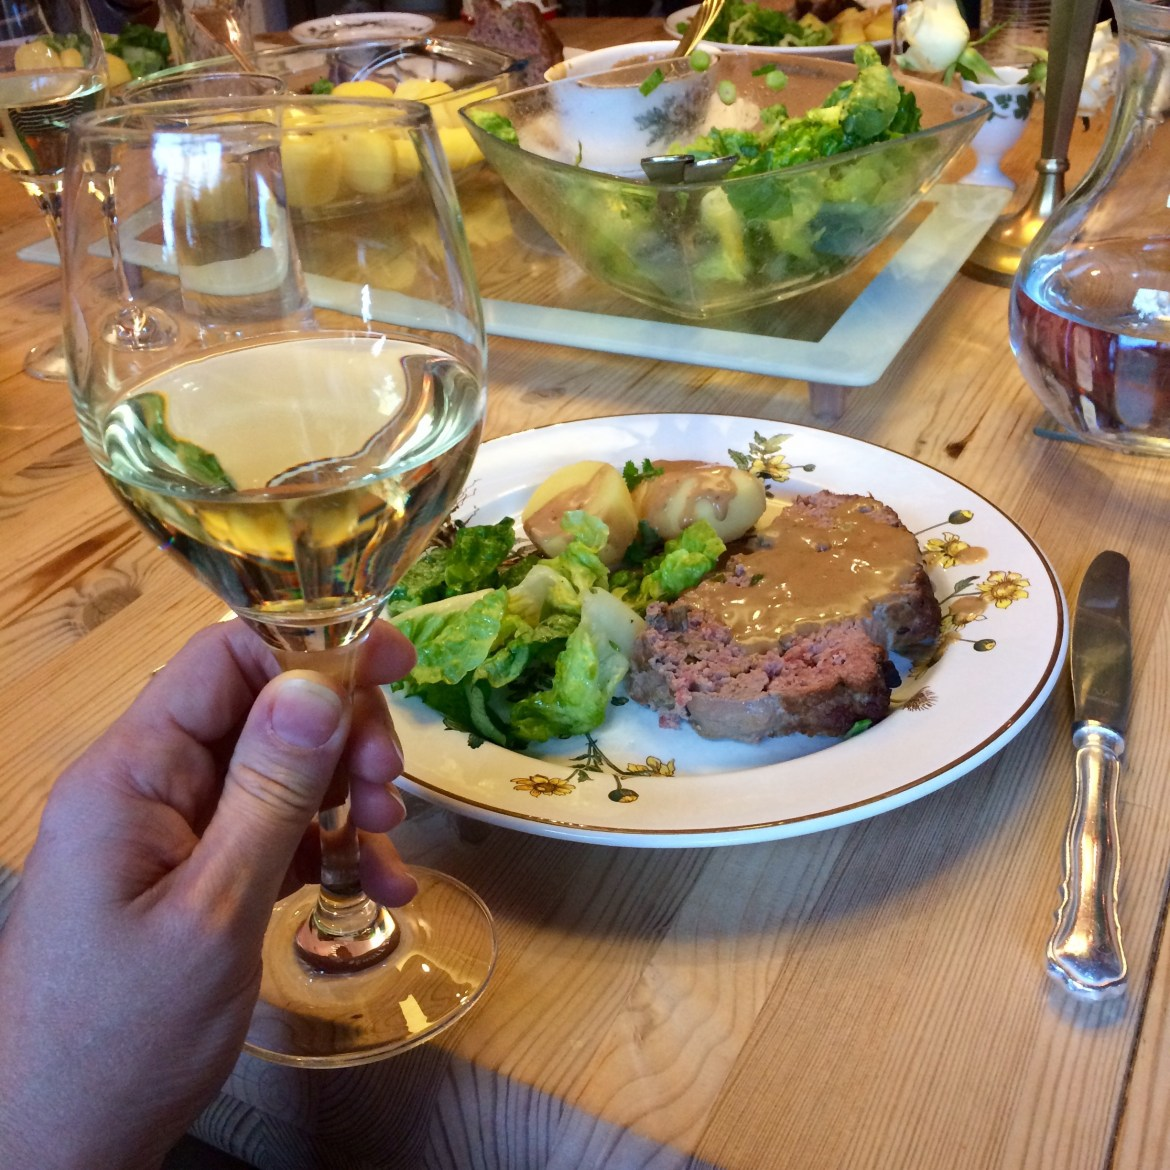 A glass of Riesling being held in front of a plate of German meatloaf, potatoes and salad